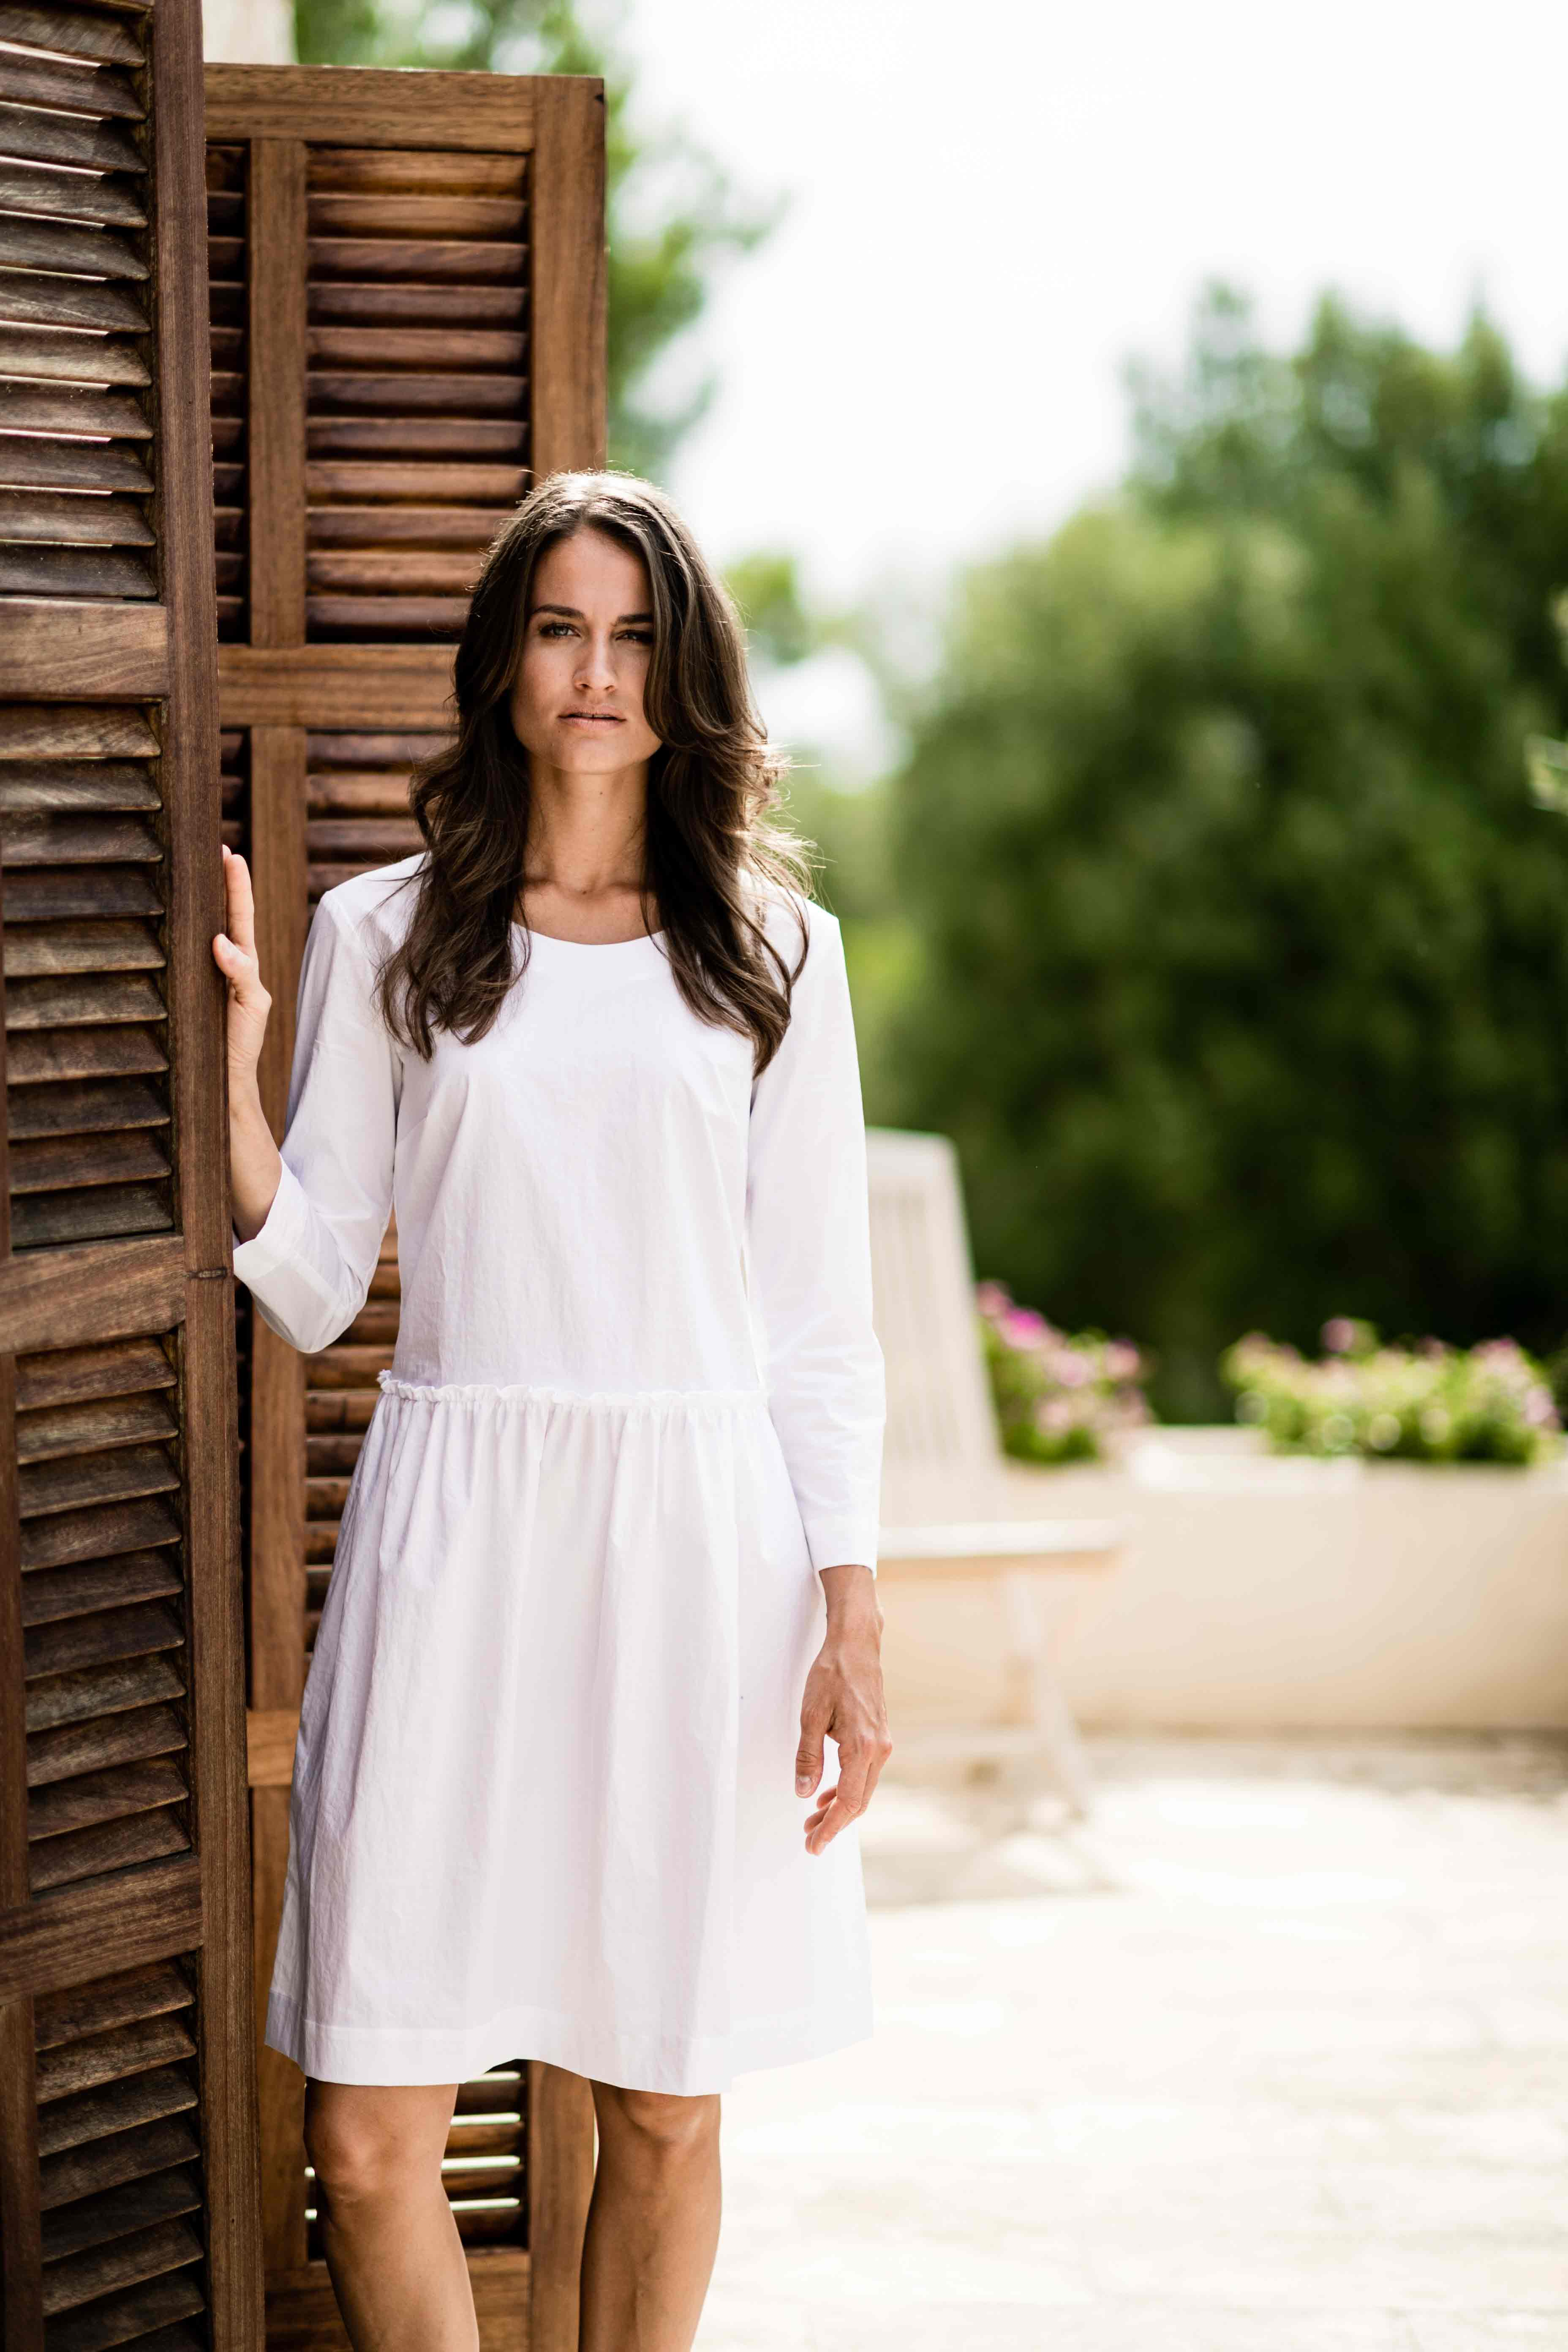 EVELIN-weiss-0039ITALY-25874_web